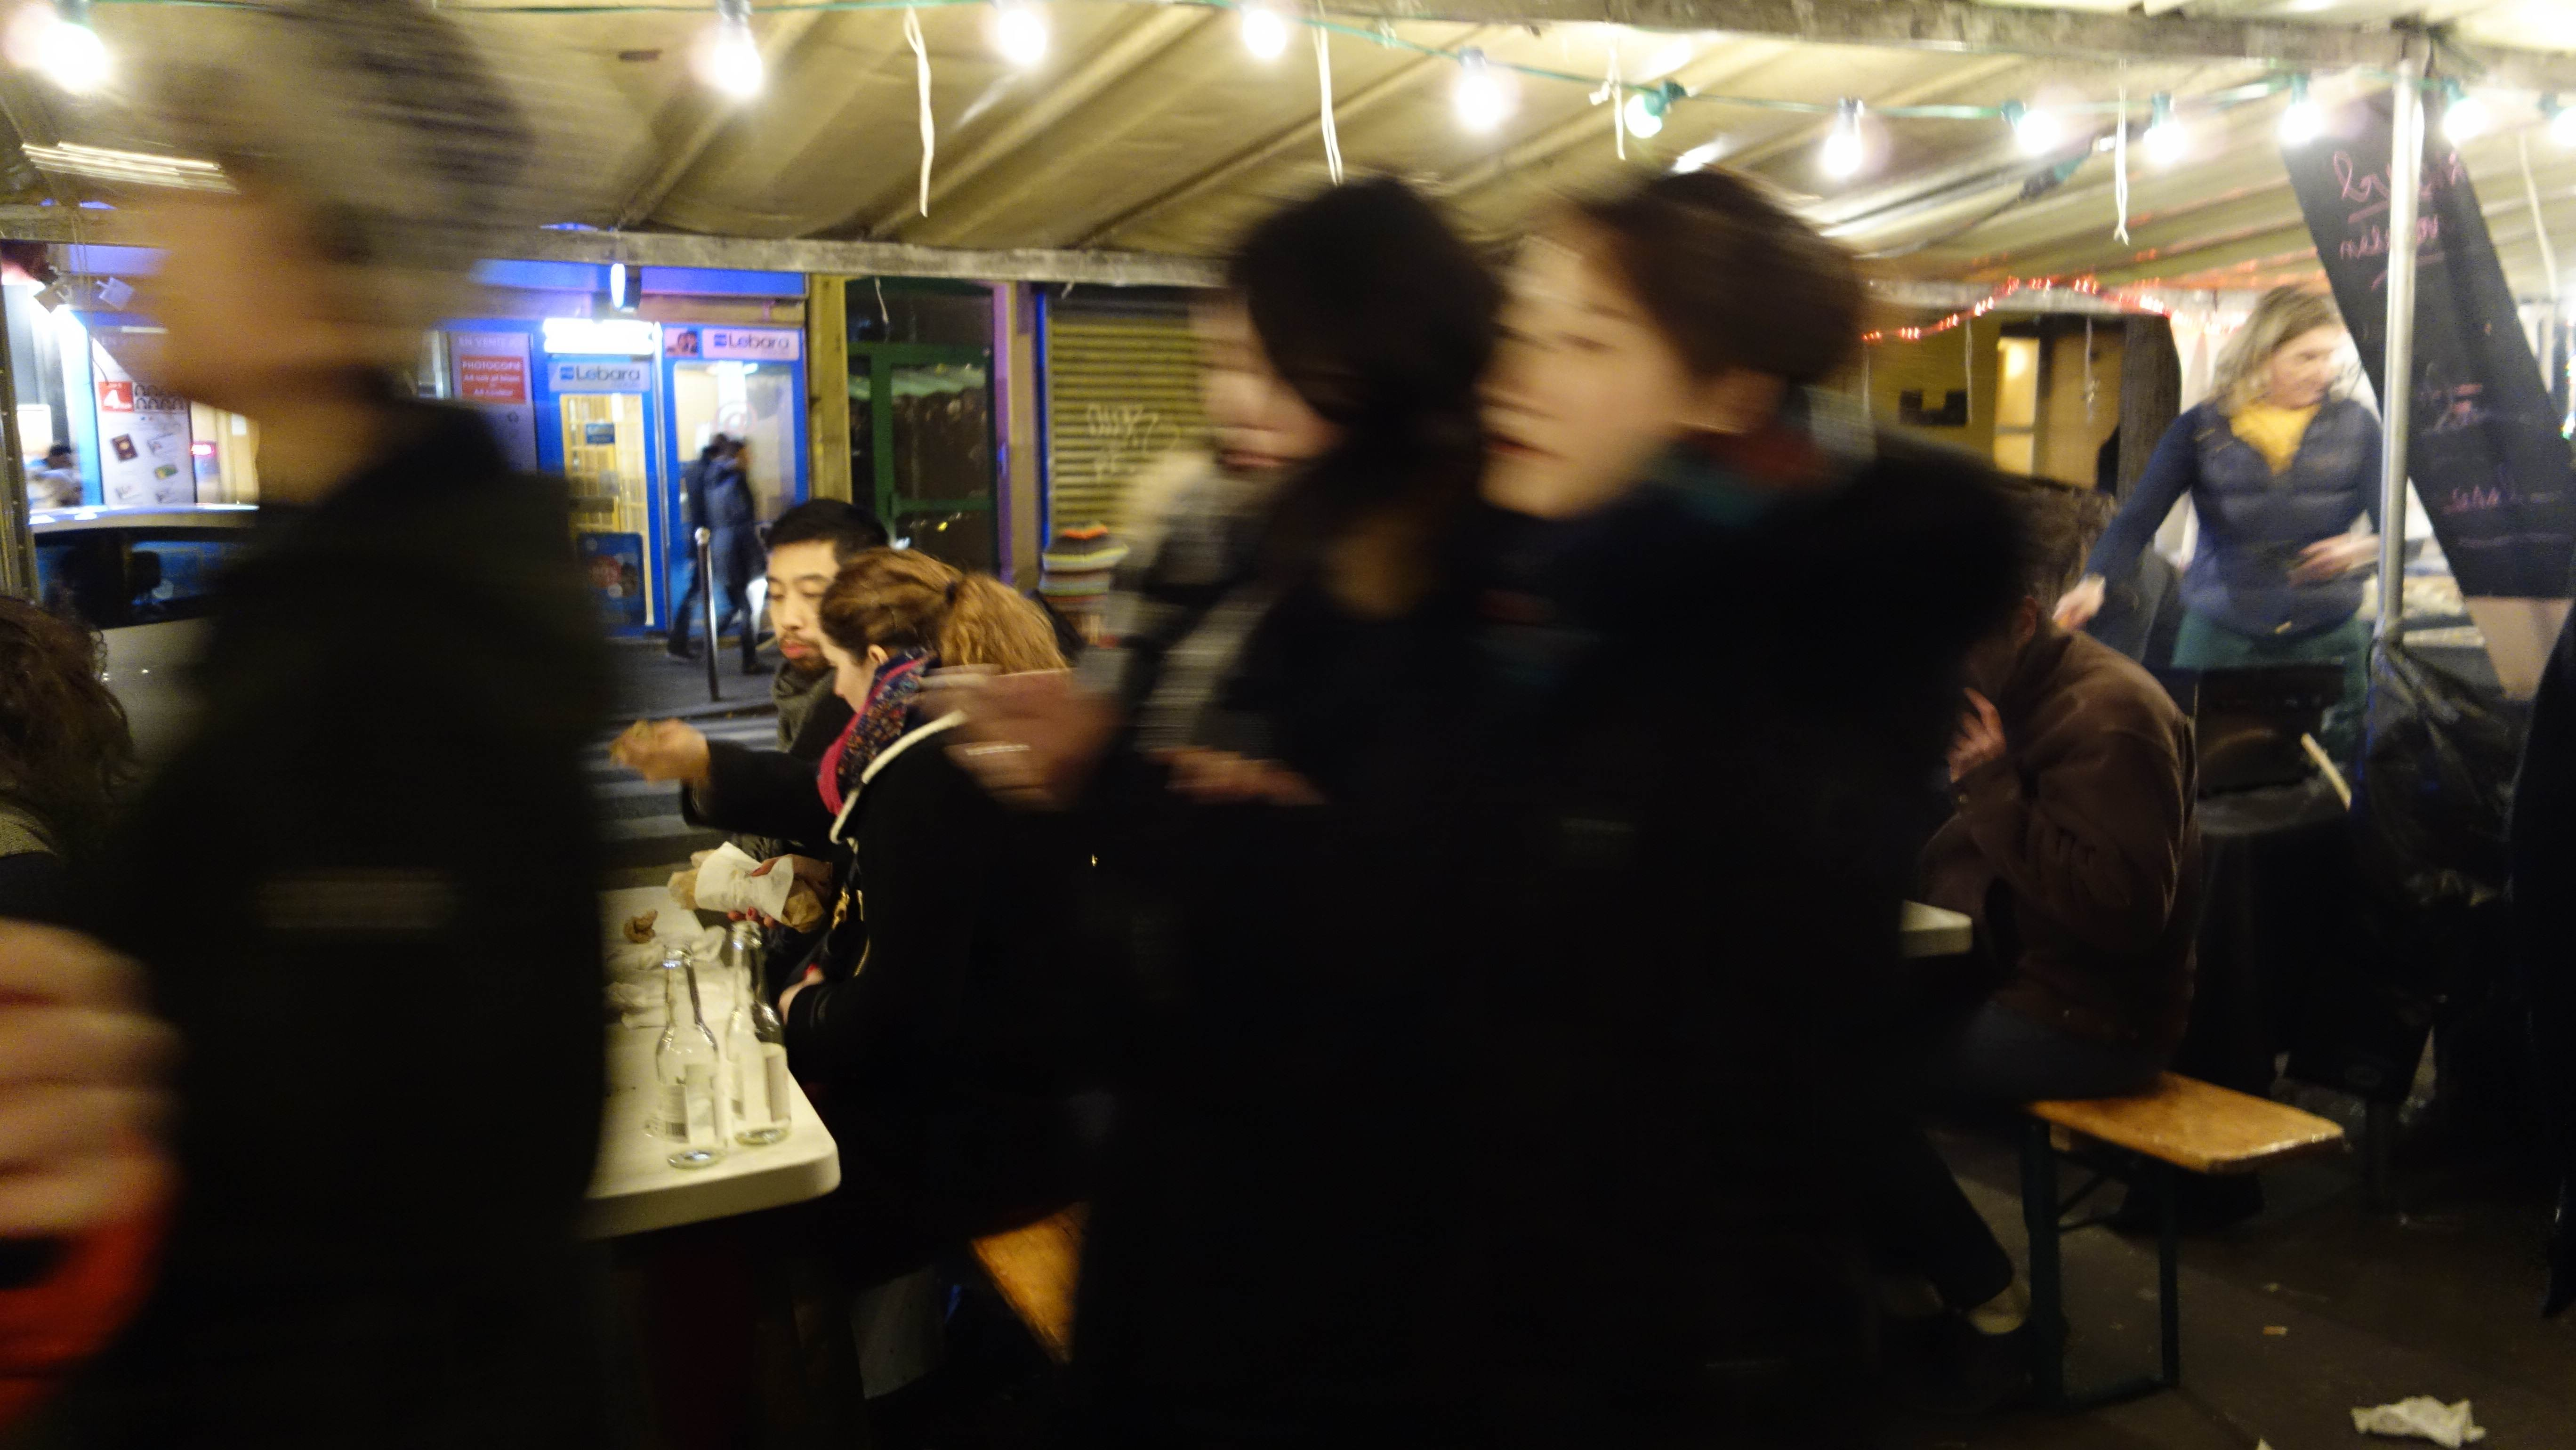 le food market myparisianlife january 21 2016 people